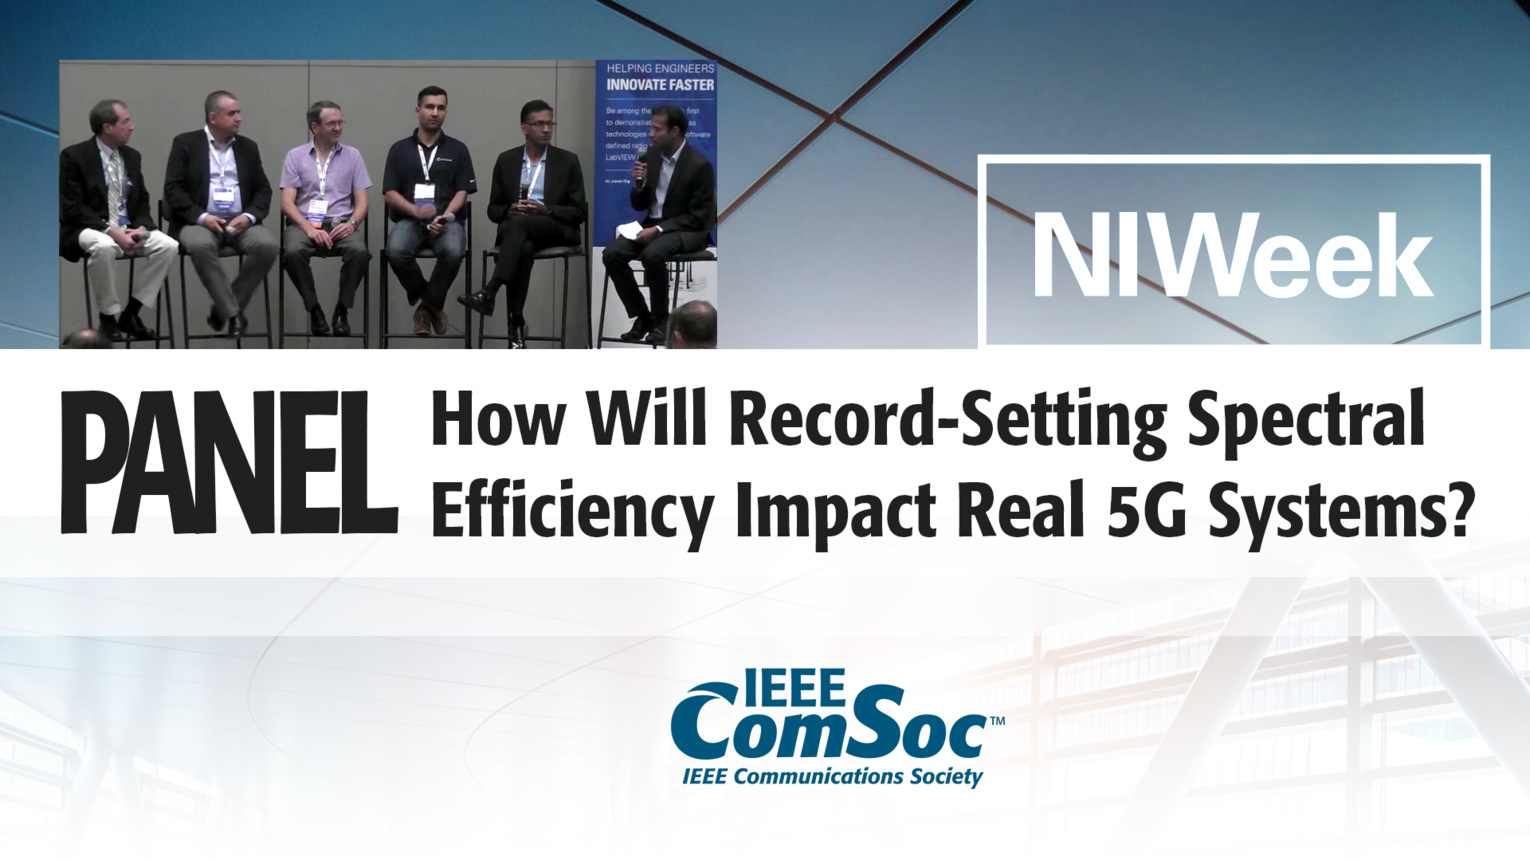 How Will Record-Setting Spectral Efficiency Impact Real 5G Systems? - Panel from NIWeek 5G Summit